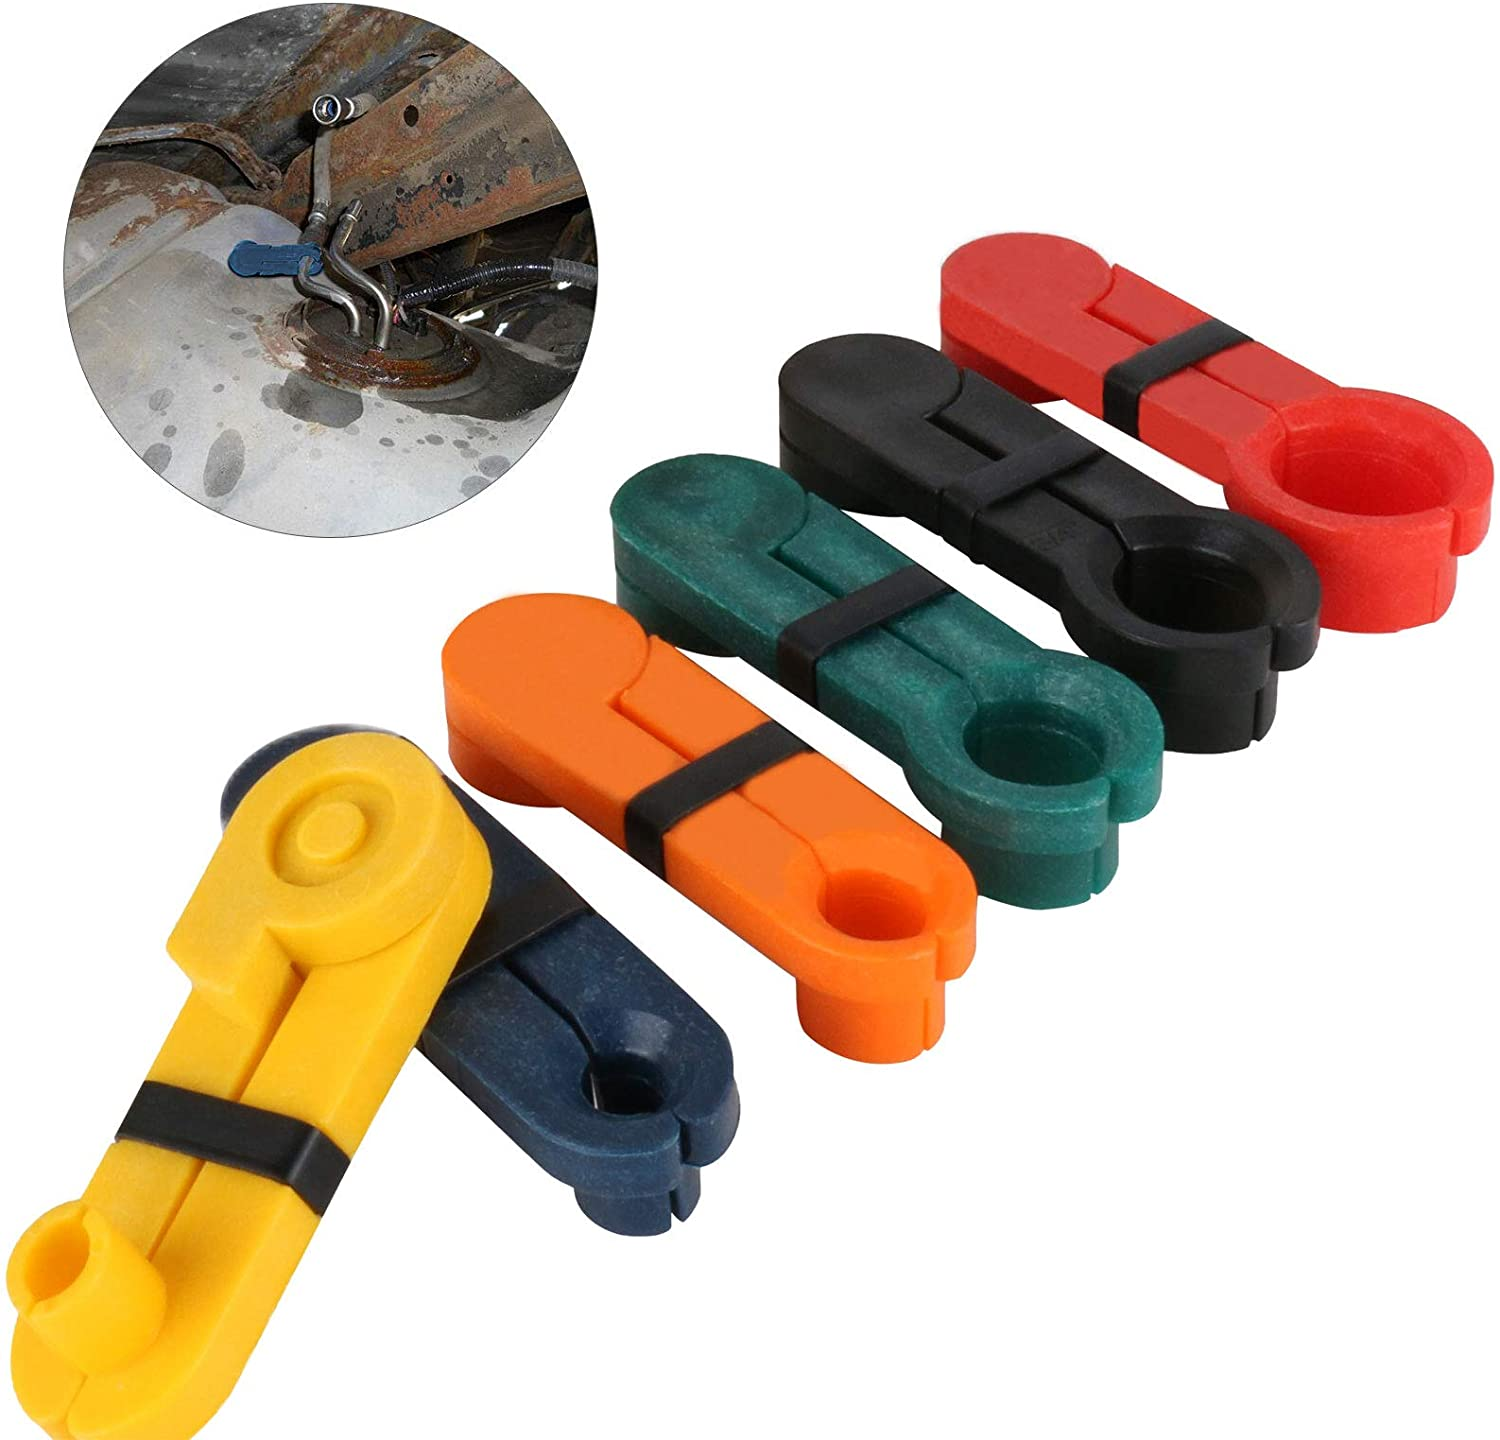 GOGOLO 6pcs Fuel Line Disconnect Tulsa Mall Removal Tool 16-7 2021 spring and summer new Set 5 8inch